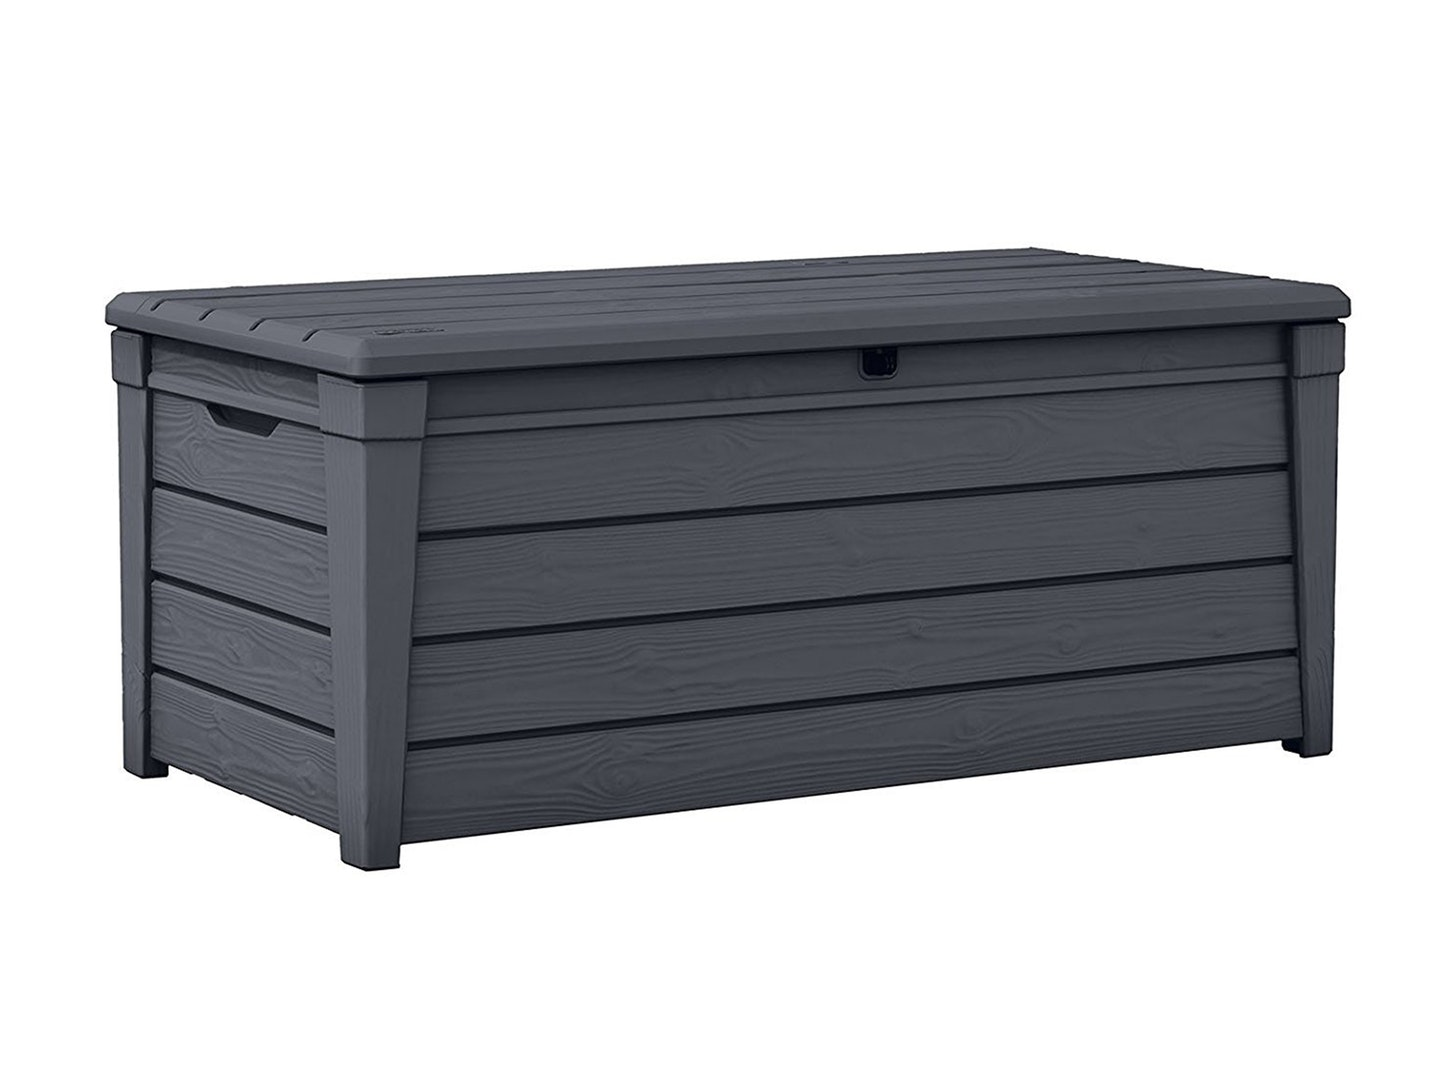 Keter Brightwood Outdoor Storage Box 454l Storage Boxes Outdoor